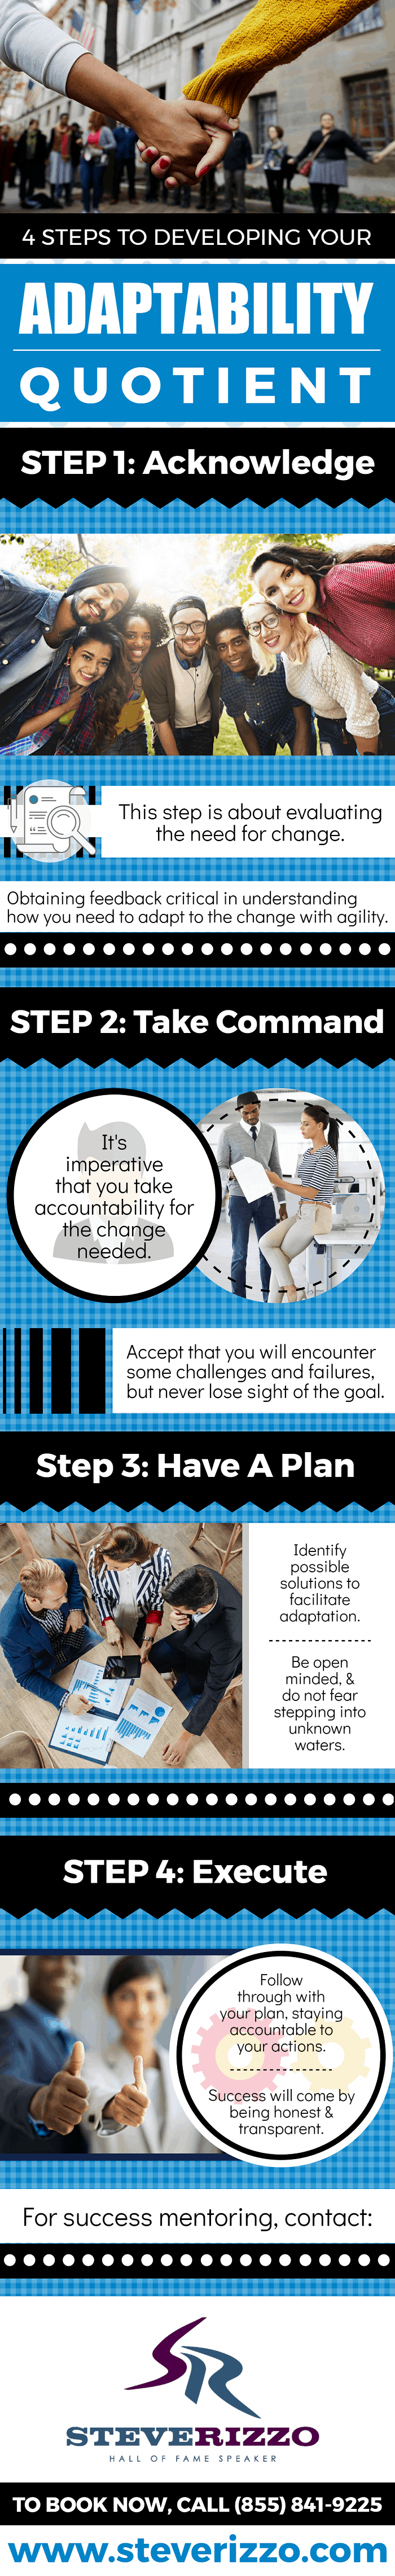 4 Steps to Developing Your Adaptability Quotient - 4 Steps to Developing Your Adaptability Quotient